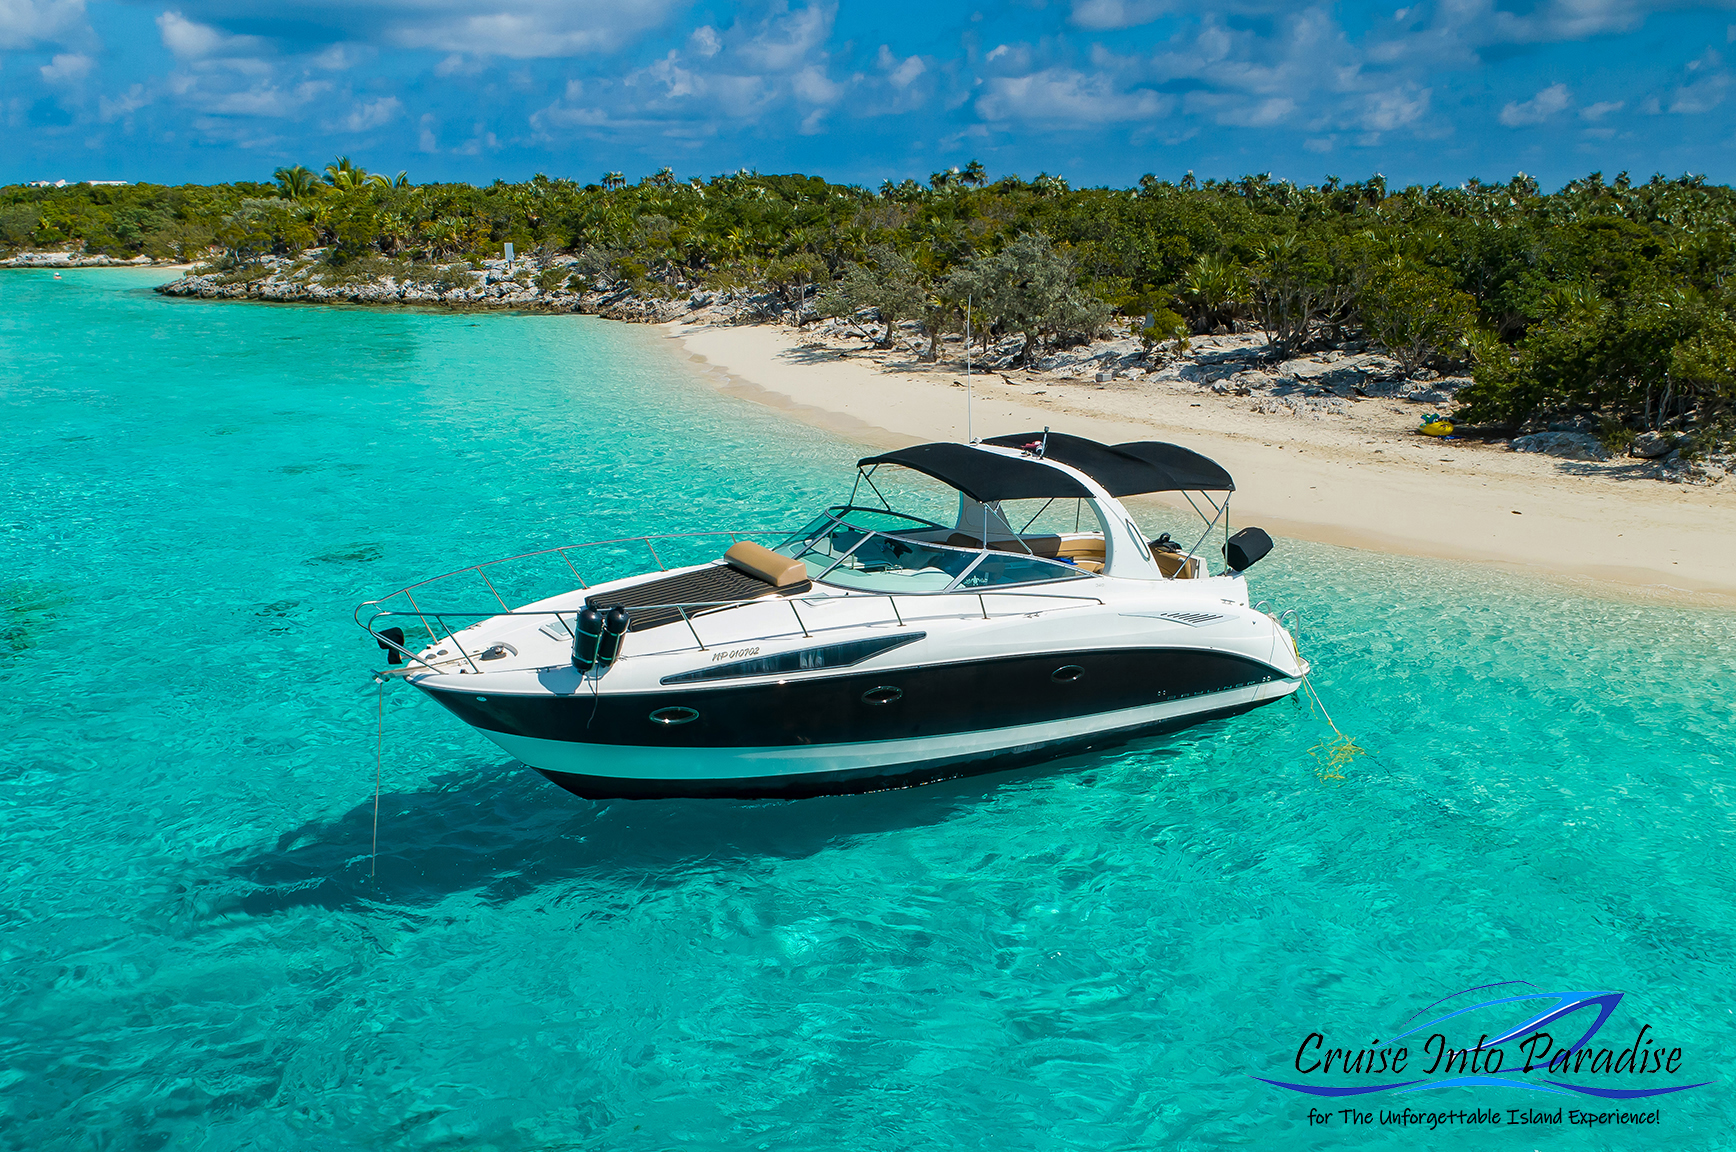 35' Bayliner, Cruise Into Paradise